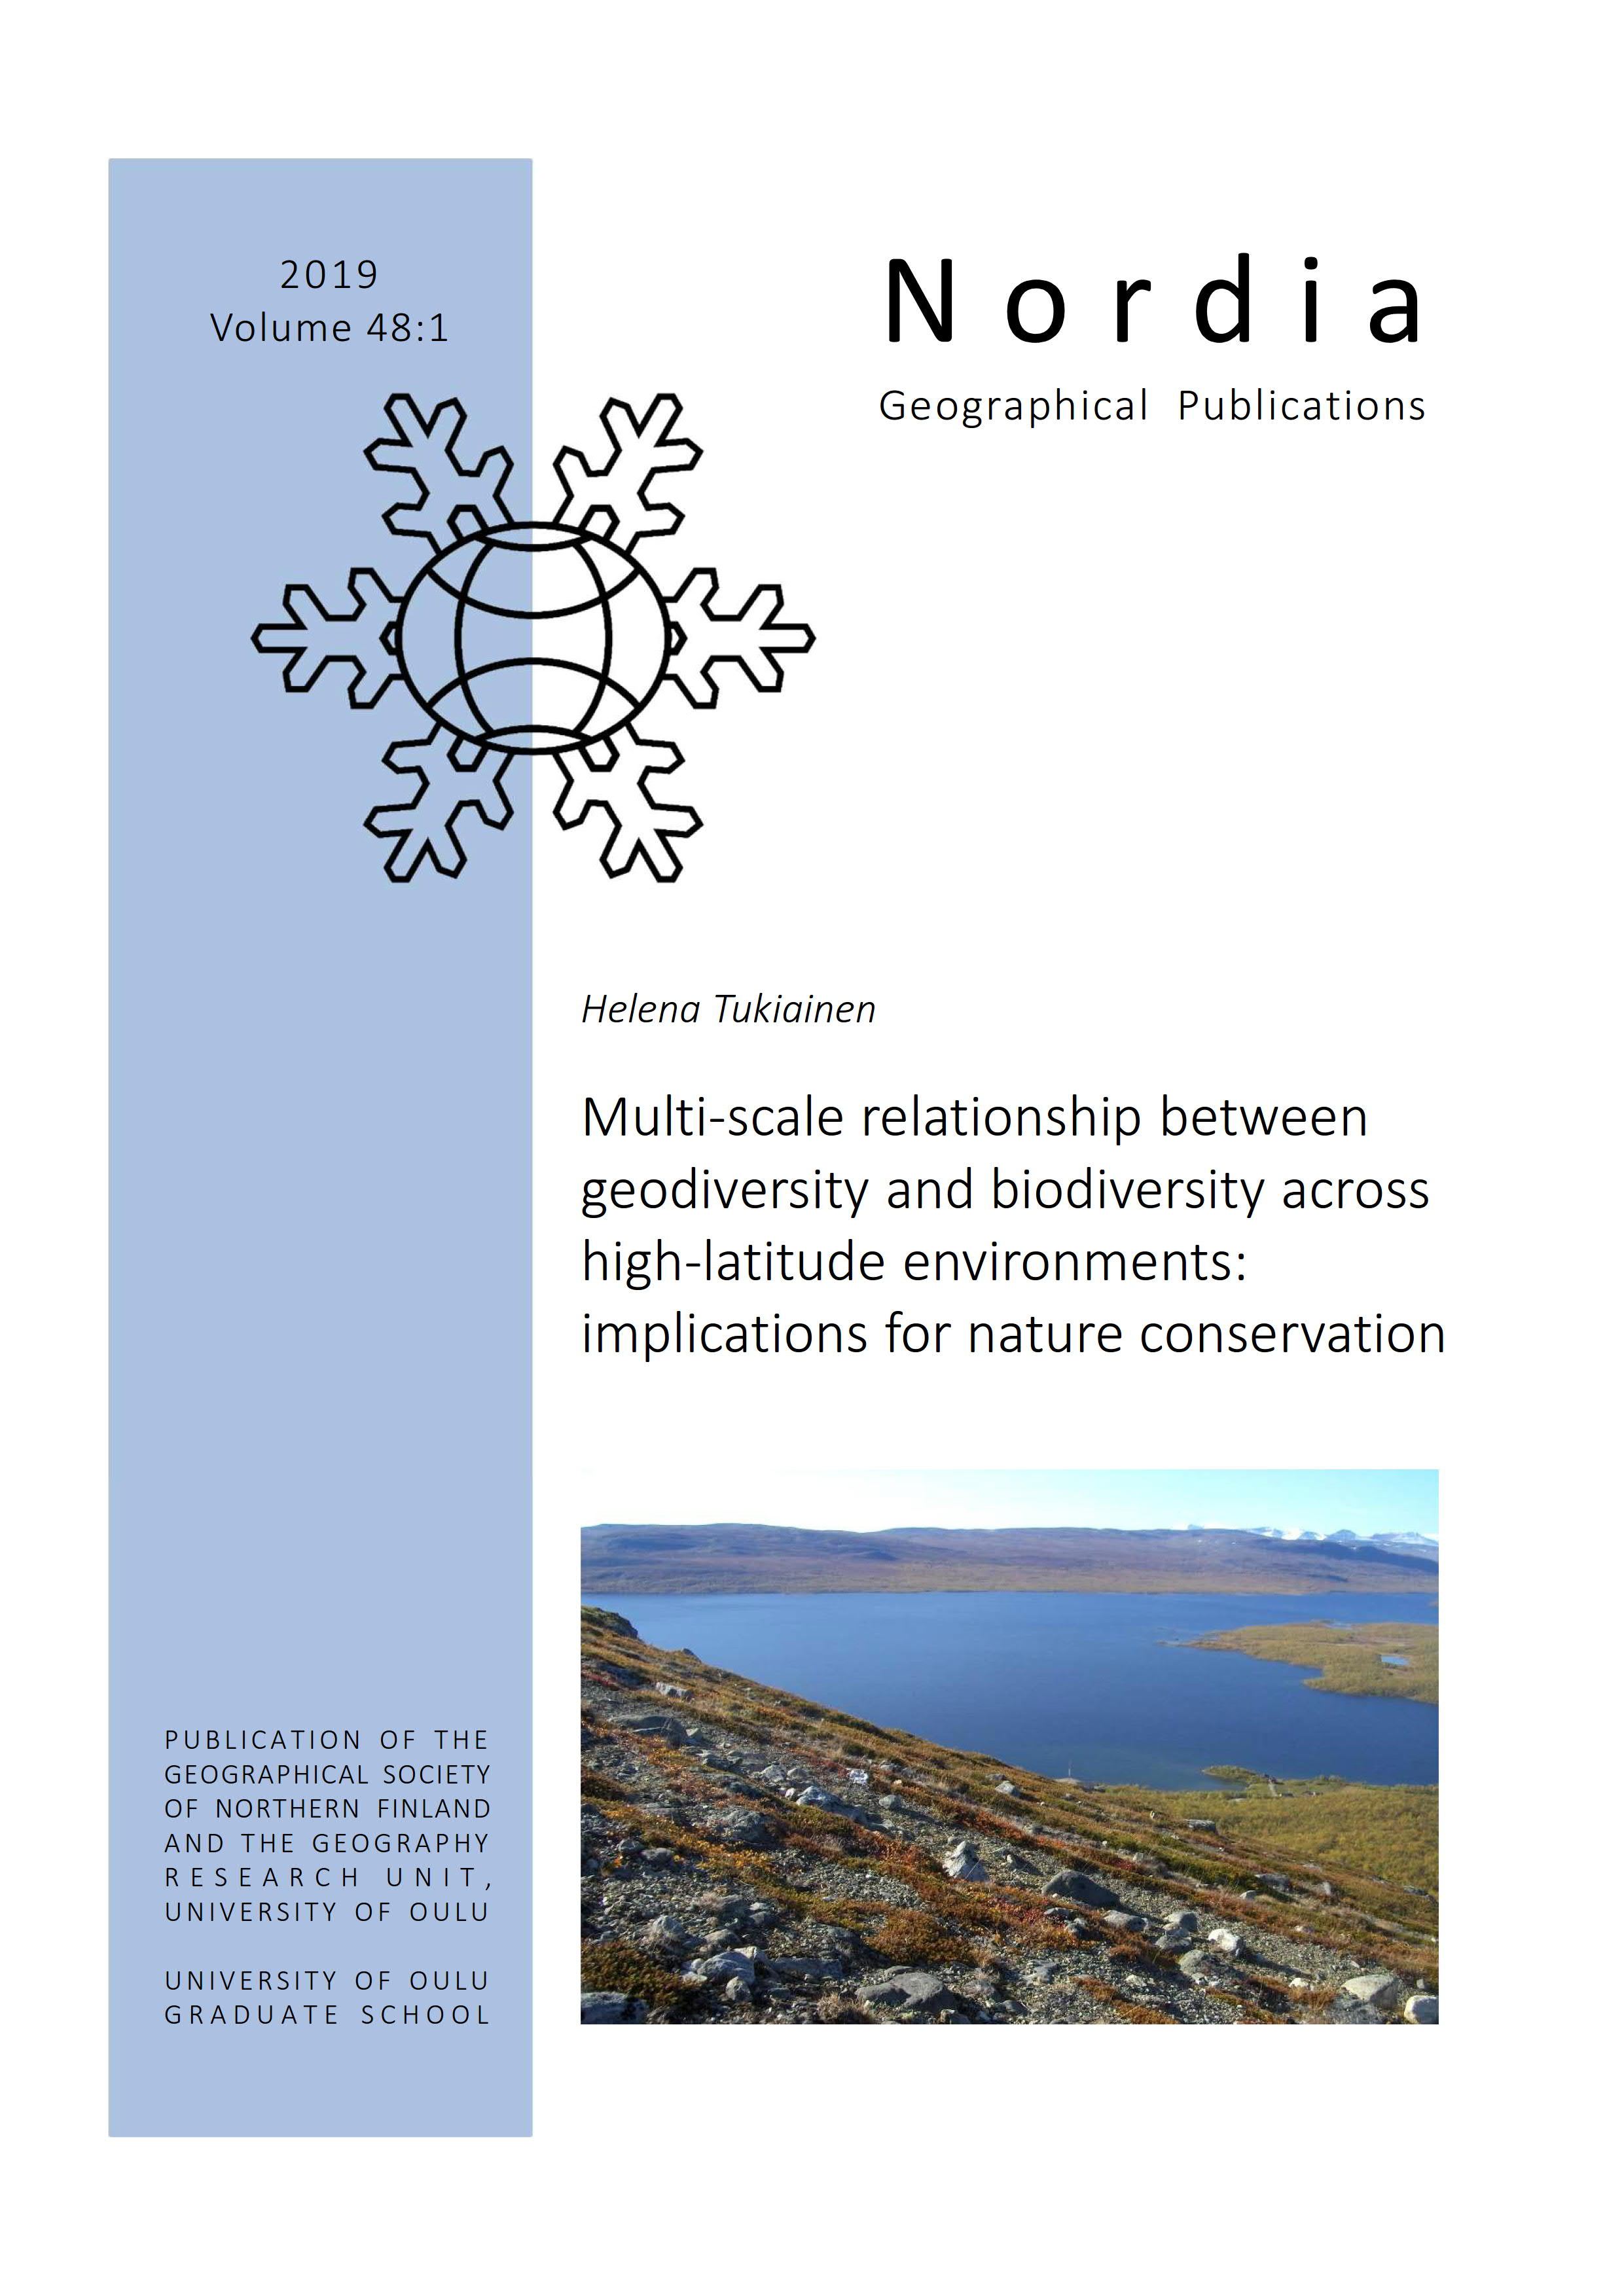 View Vol. 48 No. 1 (2019): Multi-scale relationship between geodiversity and biodiversity across high-latitude environments: implications for nature conservation